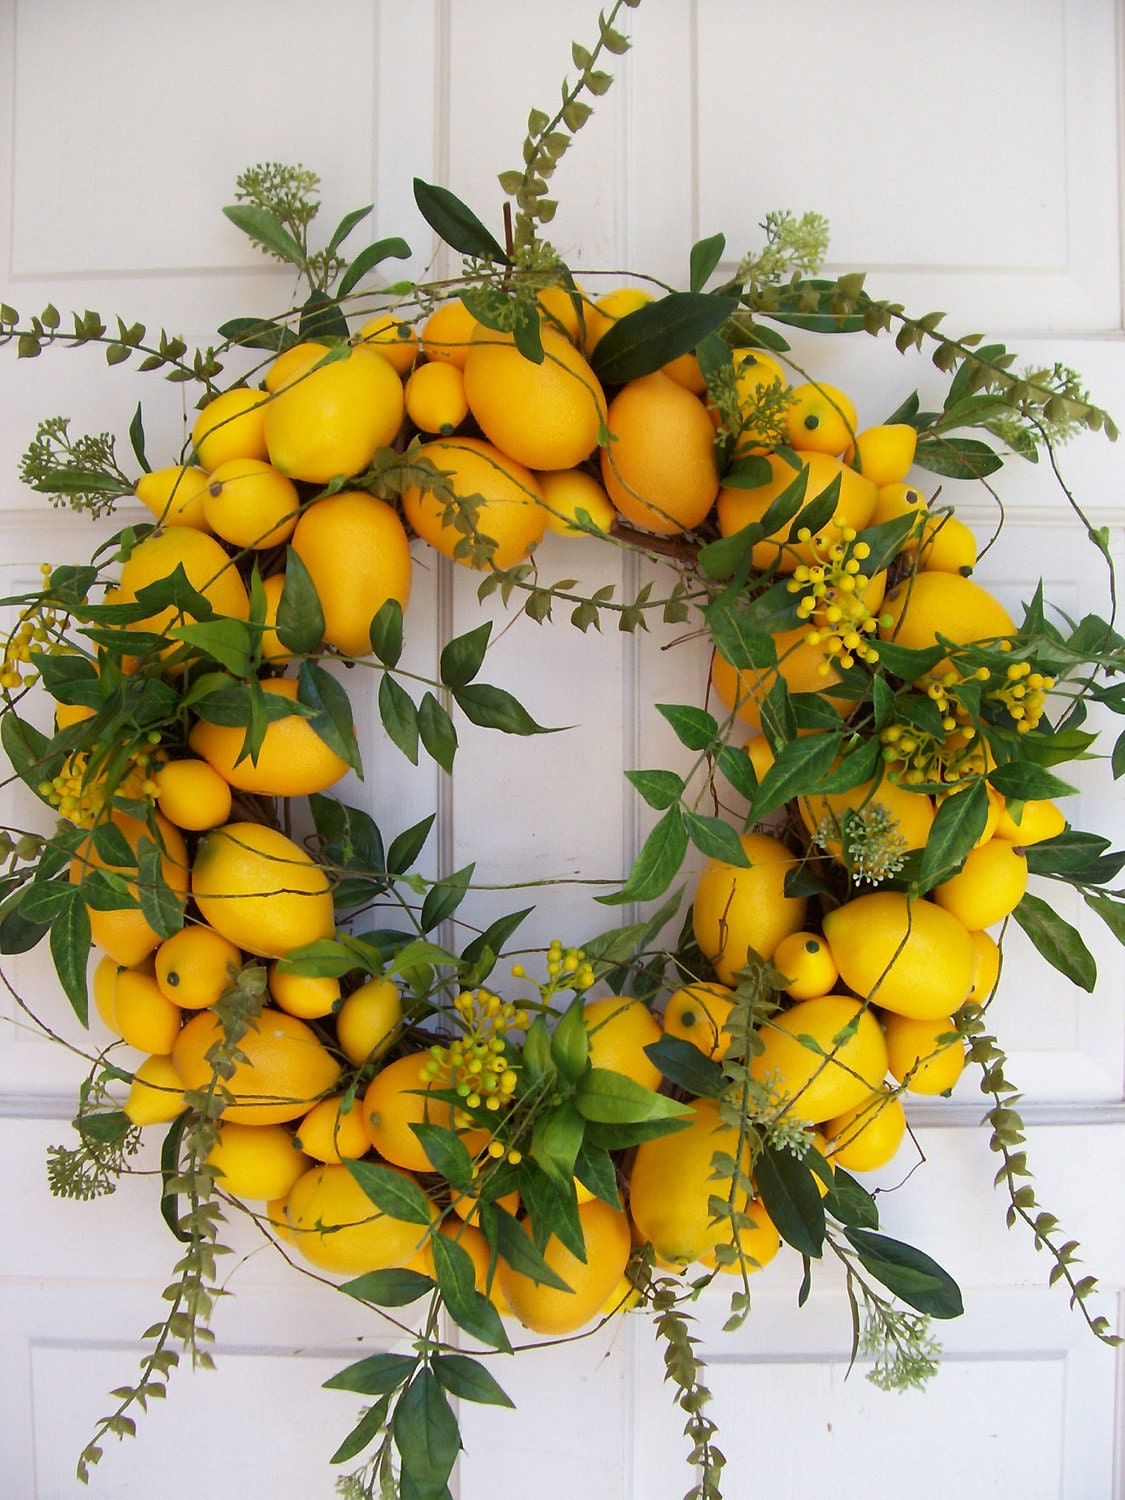 Lemon Wreath by DeLaFleur on Etsy